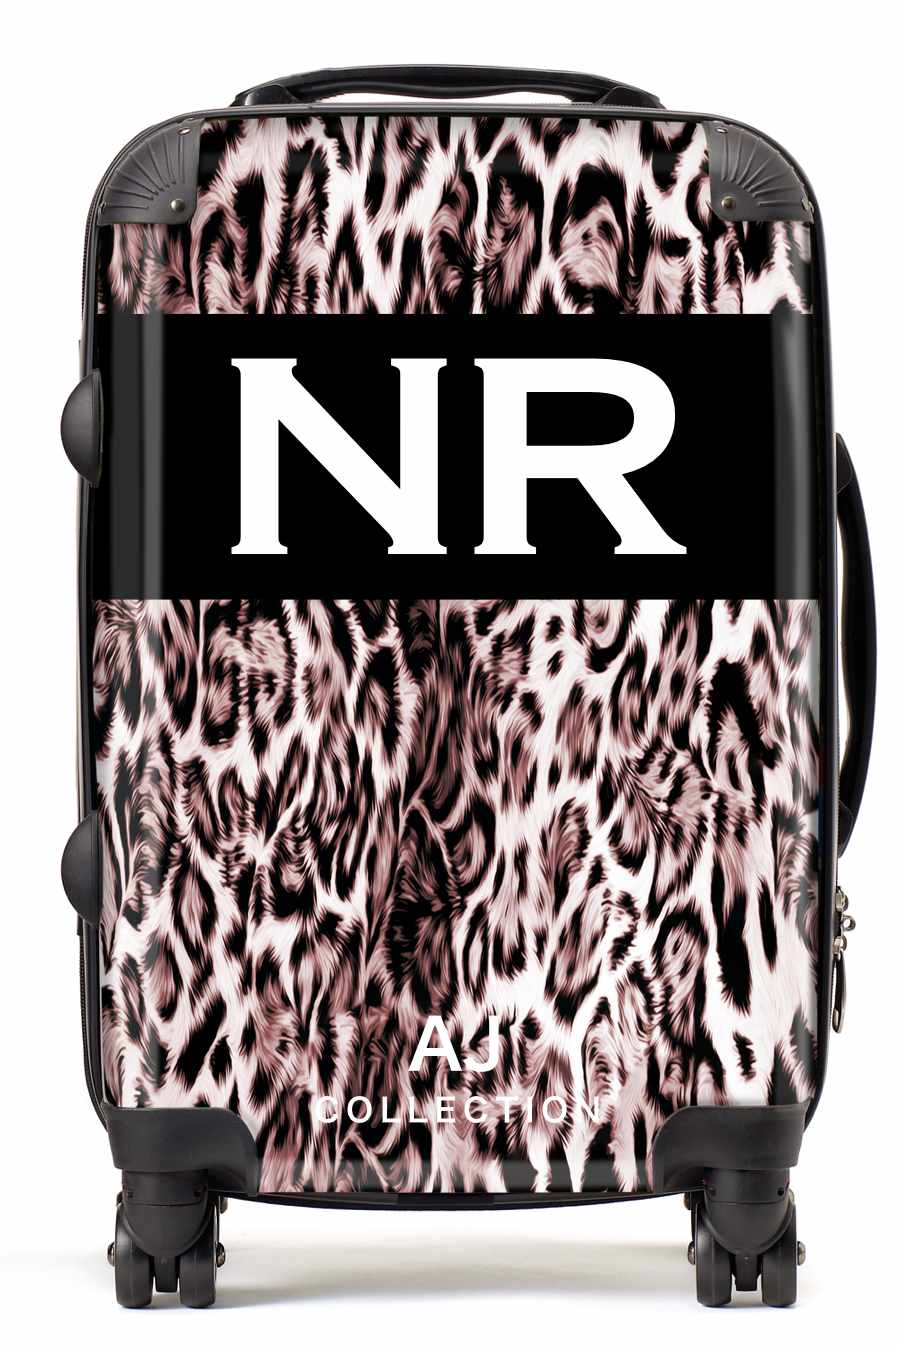 Personalised Initial Suitcase - Light Leopard Print - Small Cabin Luggage